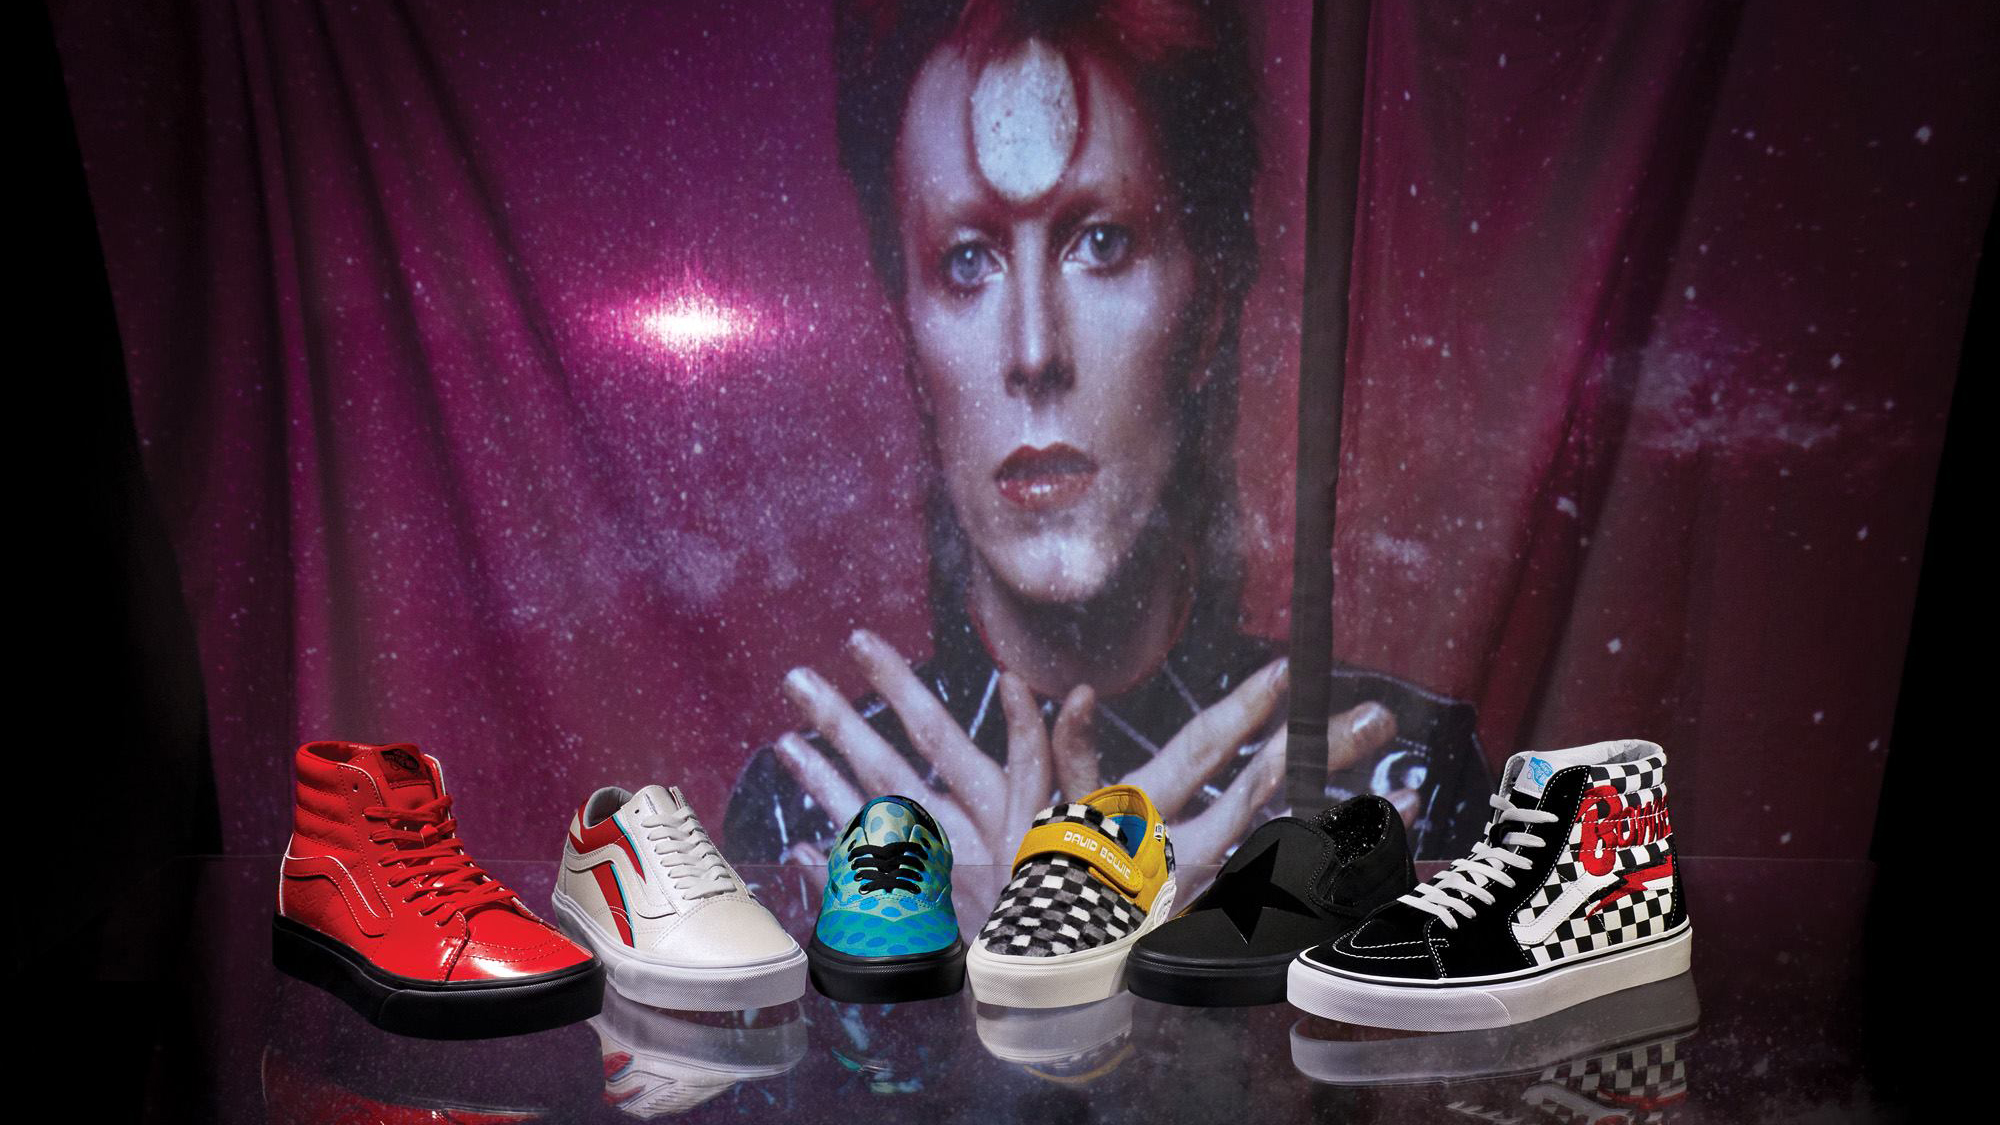 86ff7df347 Vans releases new collection inspired by David Bowie. Published 5th April  2019. Skatewear brand Vans has launched a footwear and clothing ...